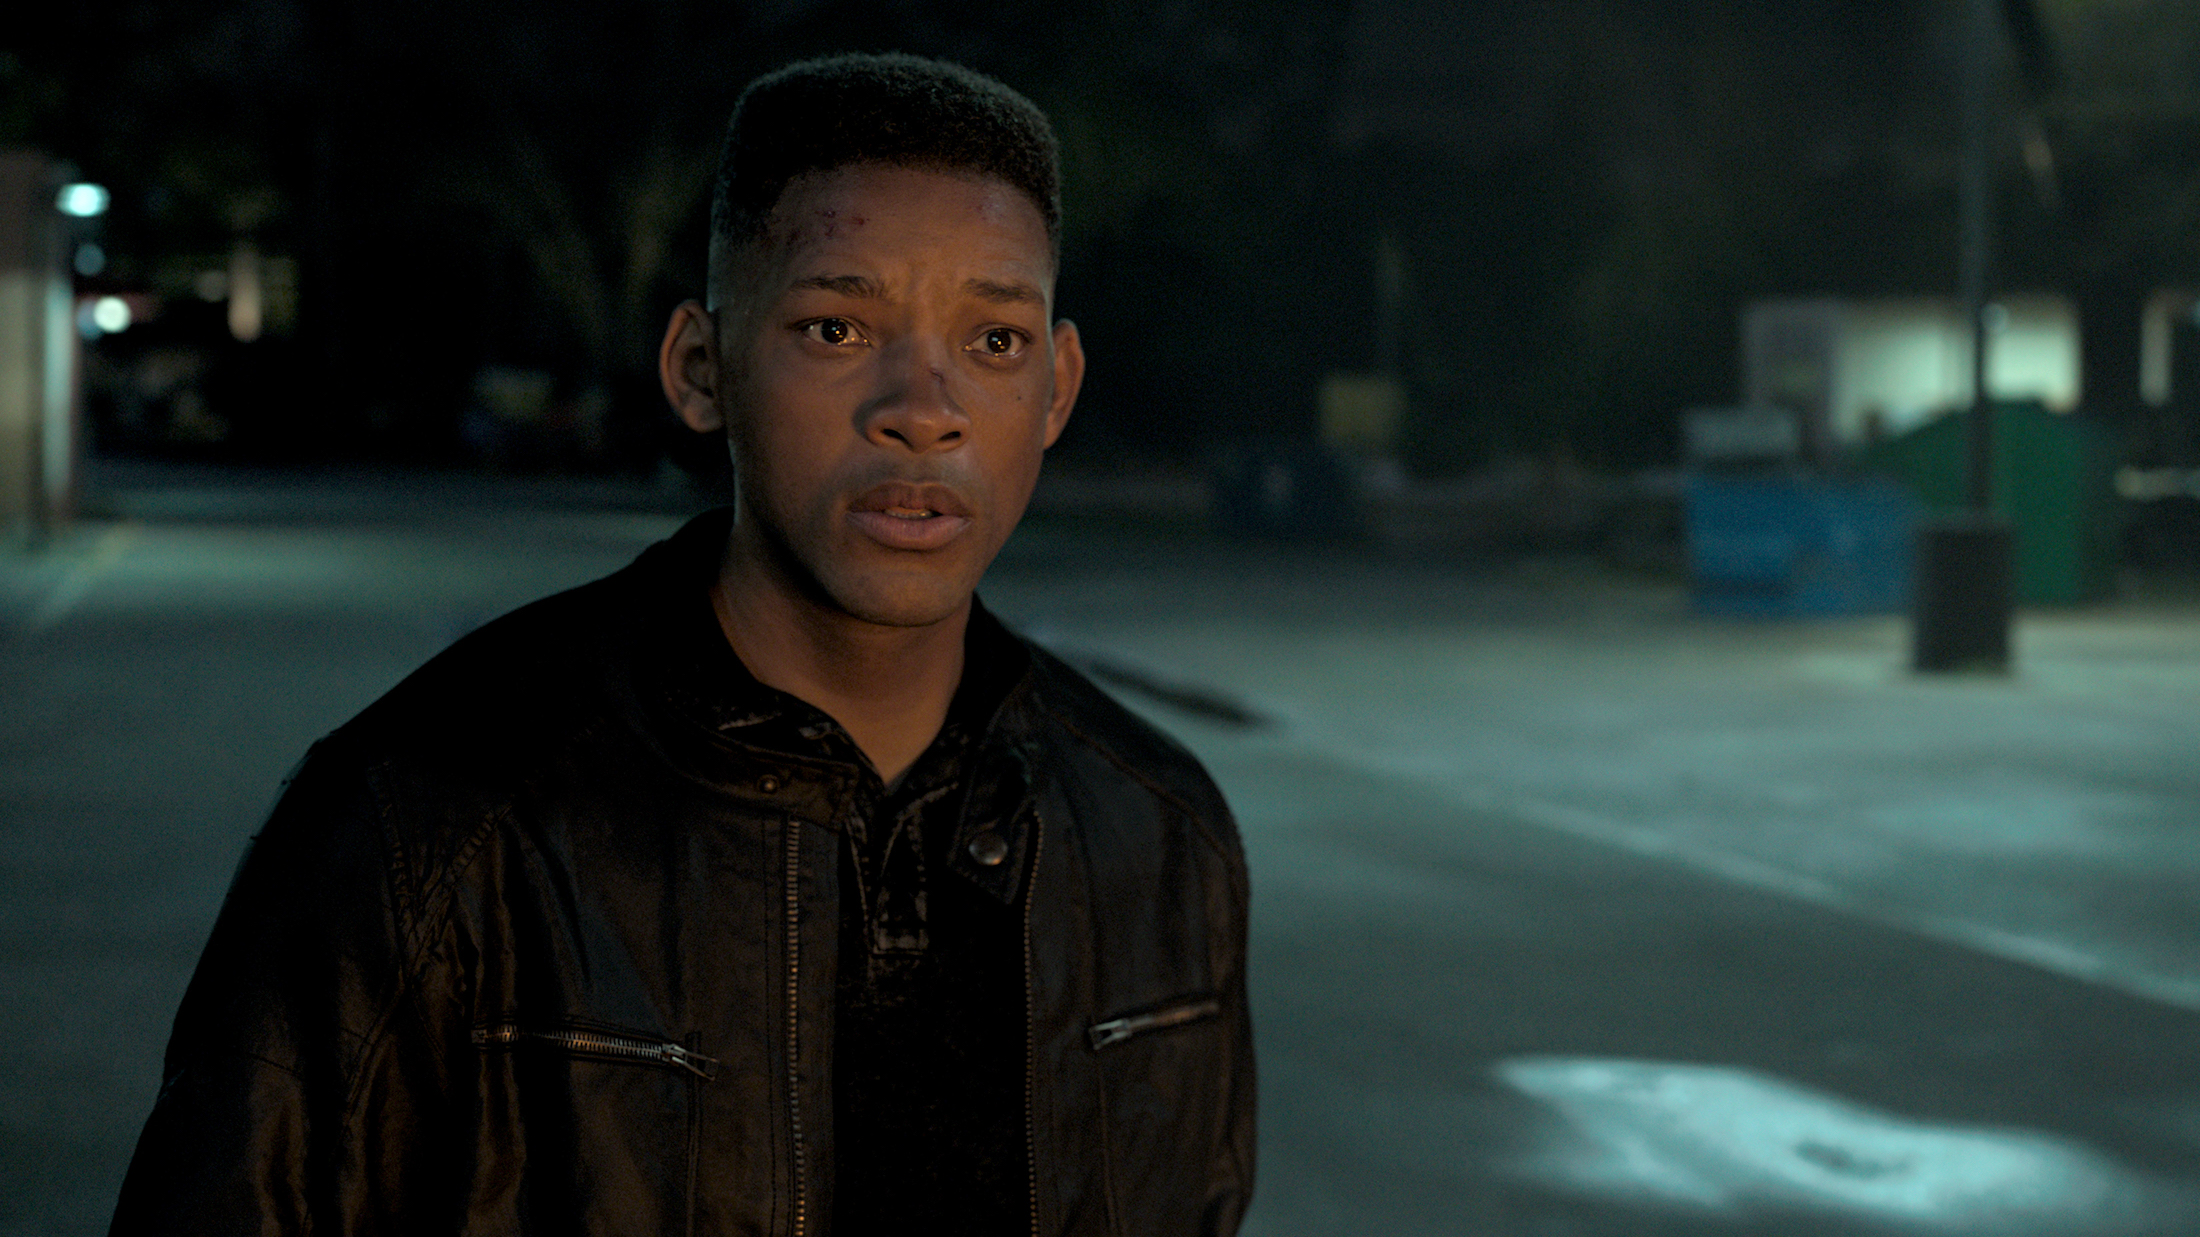 junior (a digital version of young will smith) stands mouth agape at an offscreen explosion